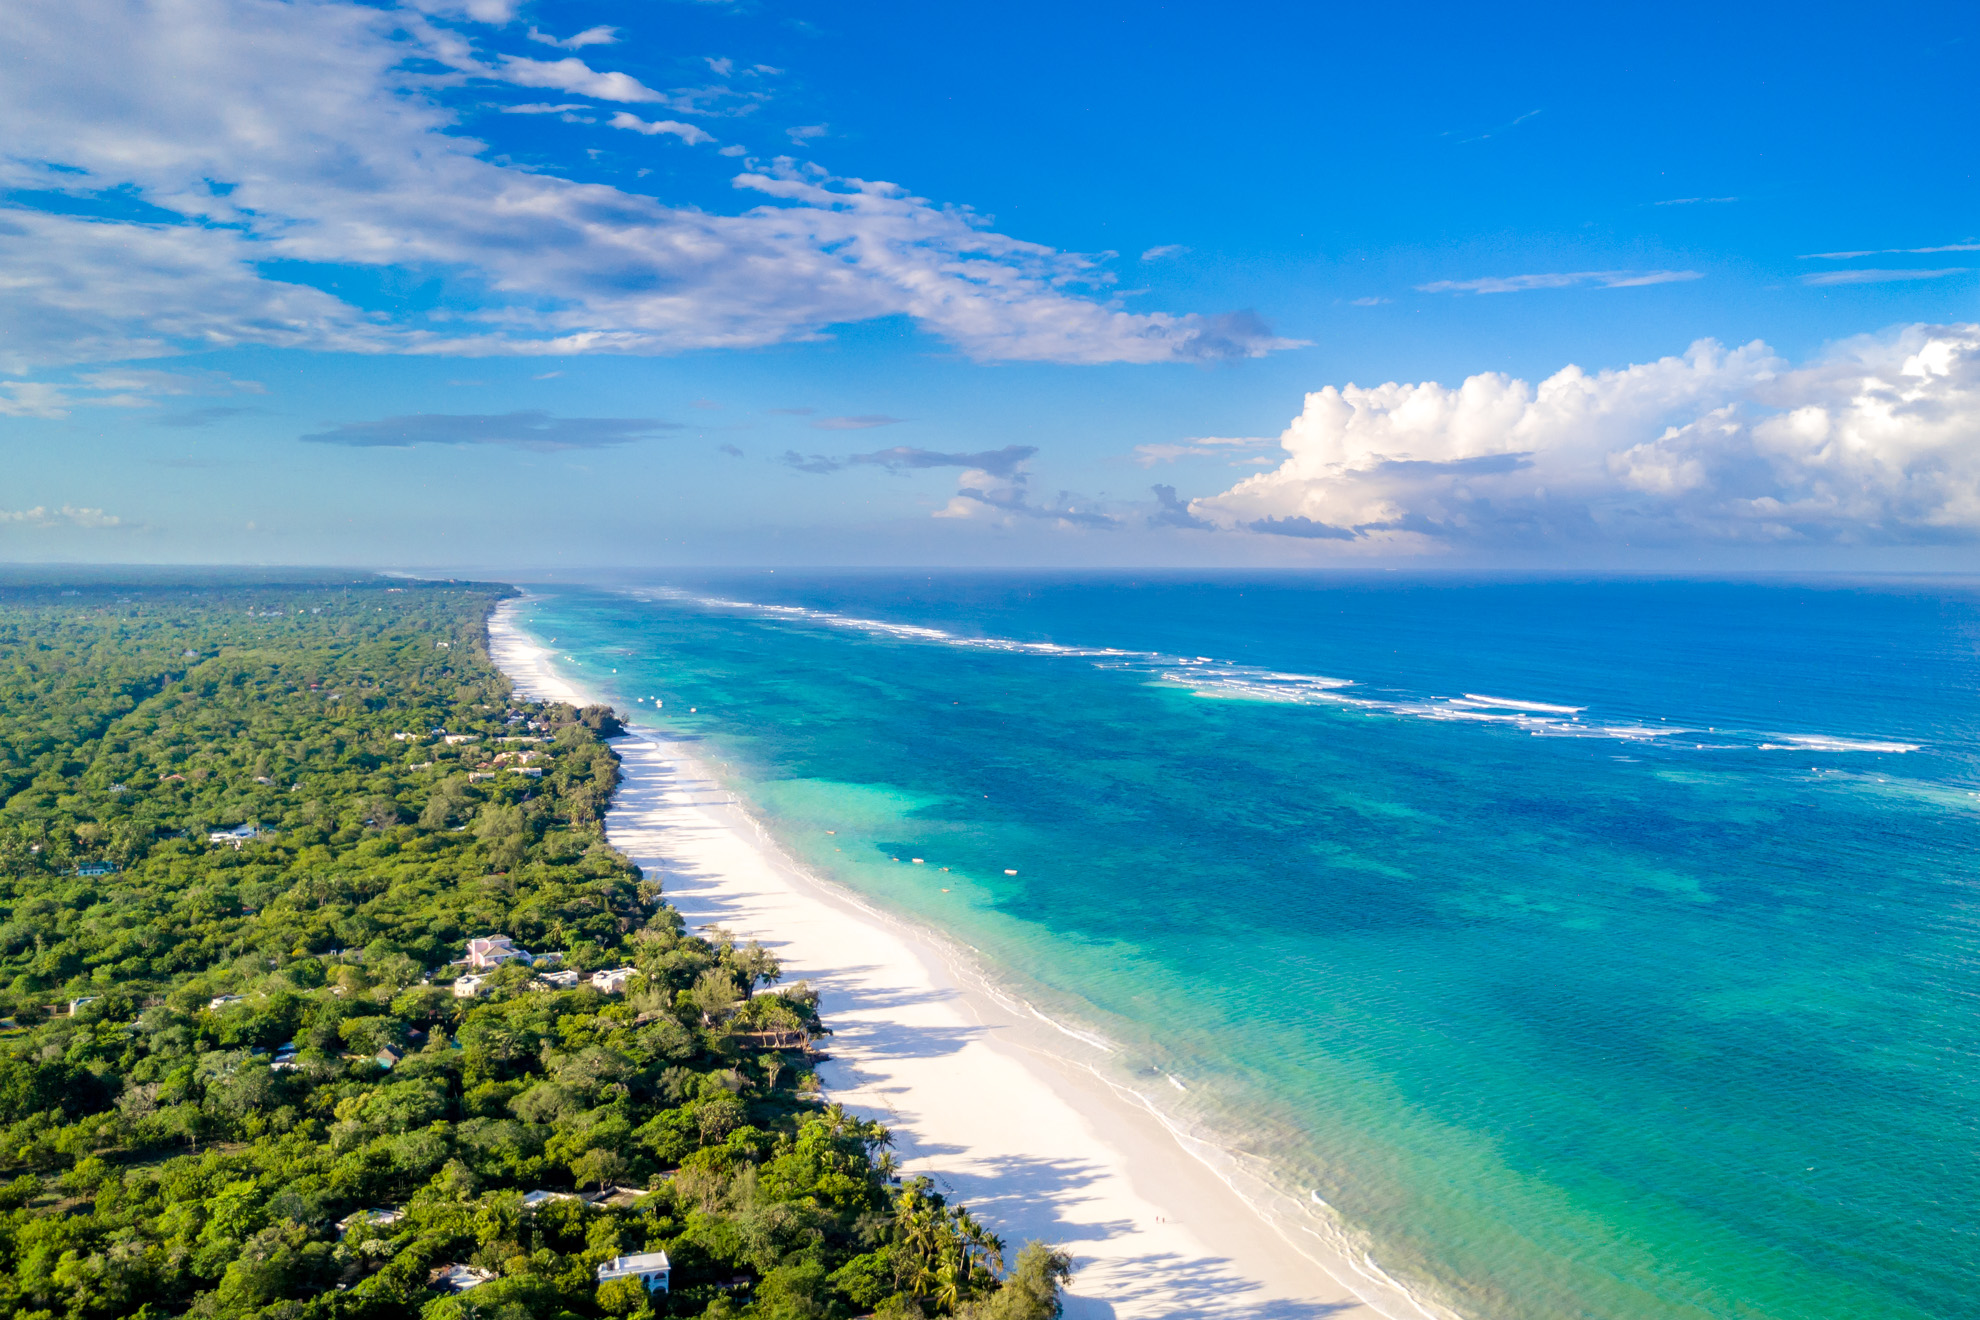 Aerial view of Diani Beach